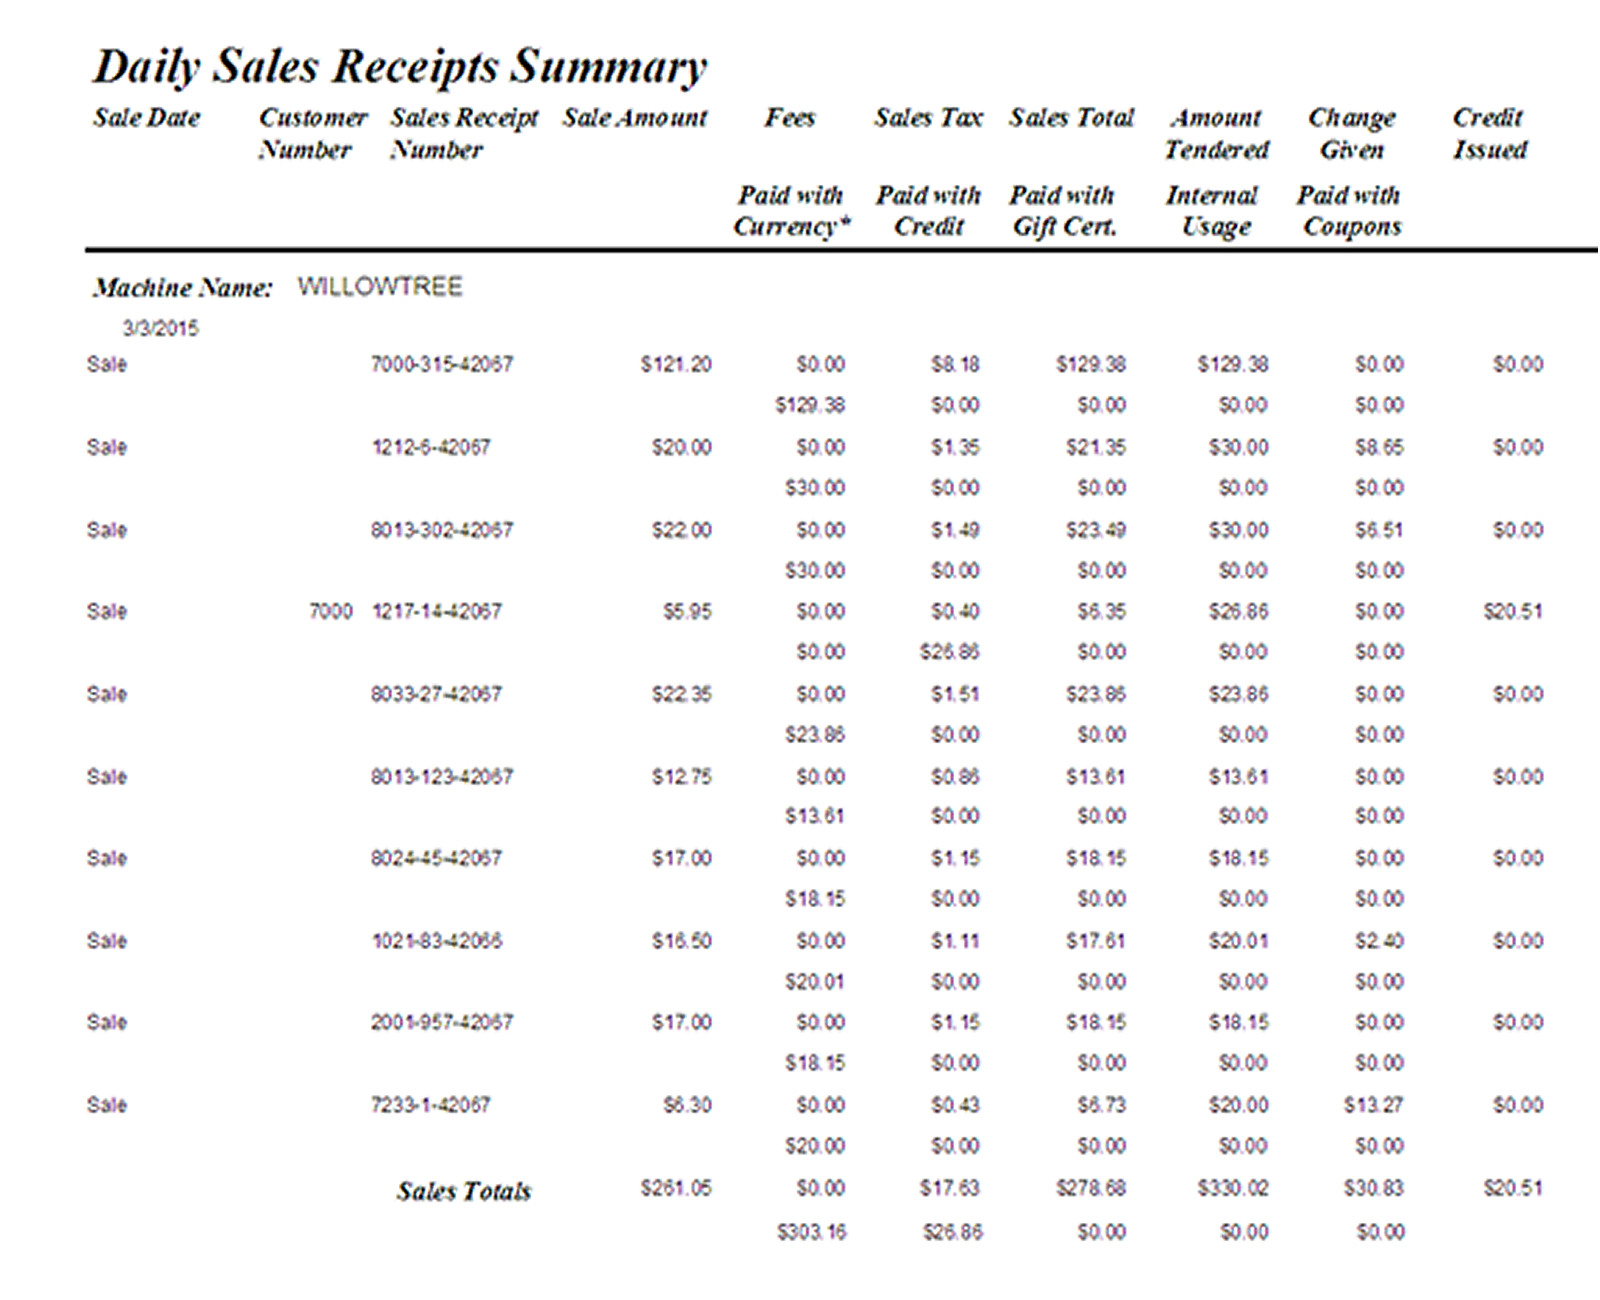 Example Daily Sales Receipts Report